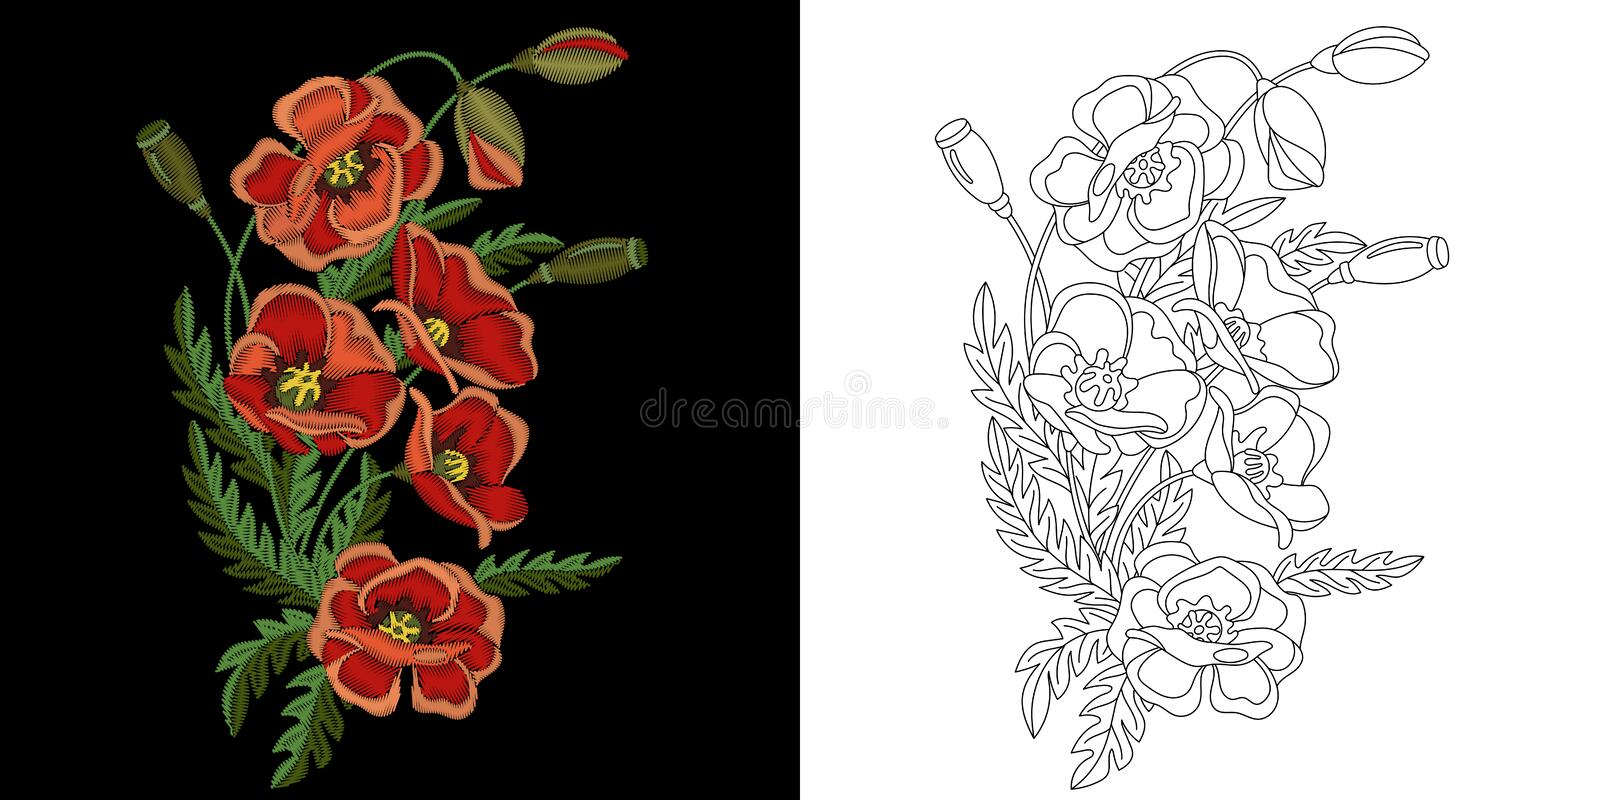 Embroidery floral design stock photography